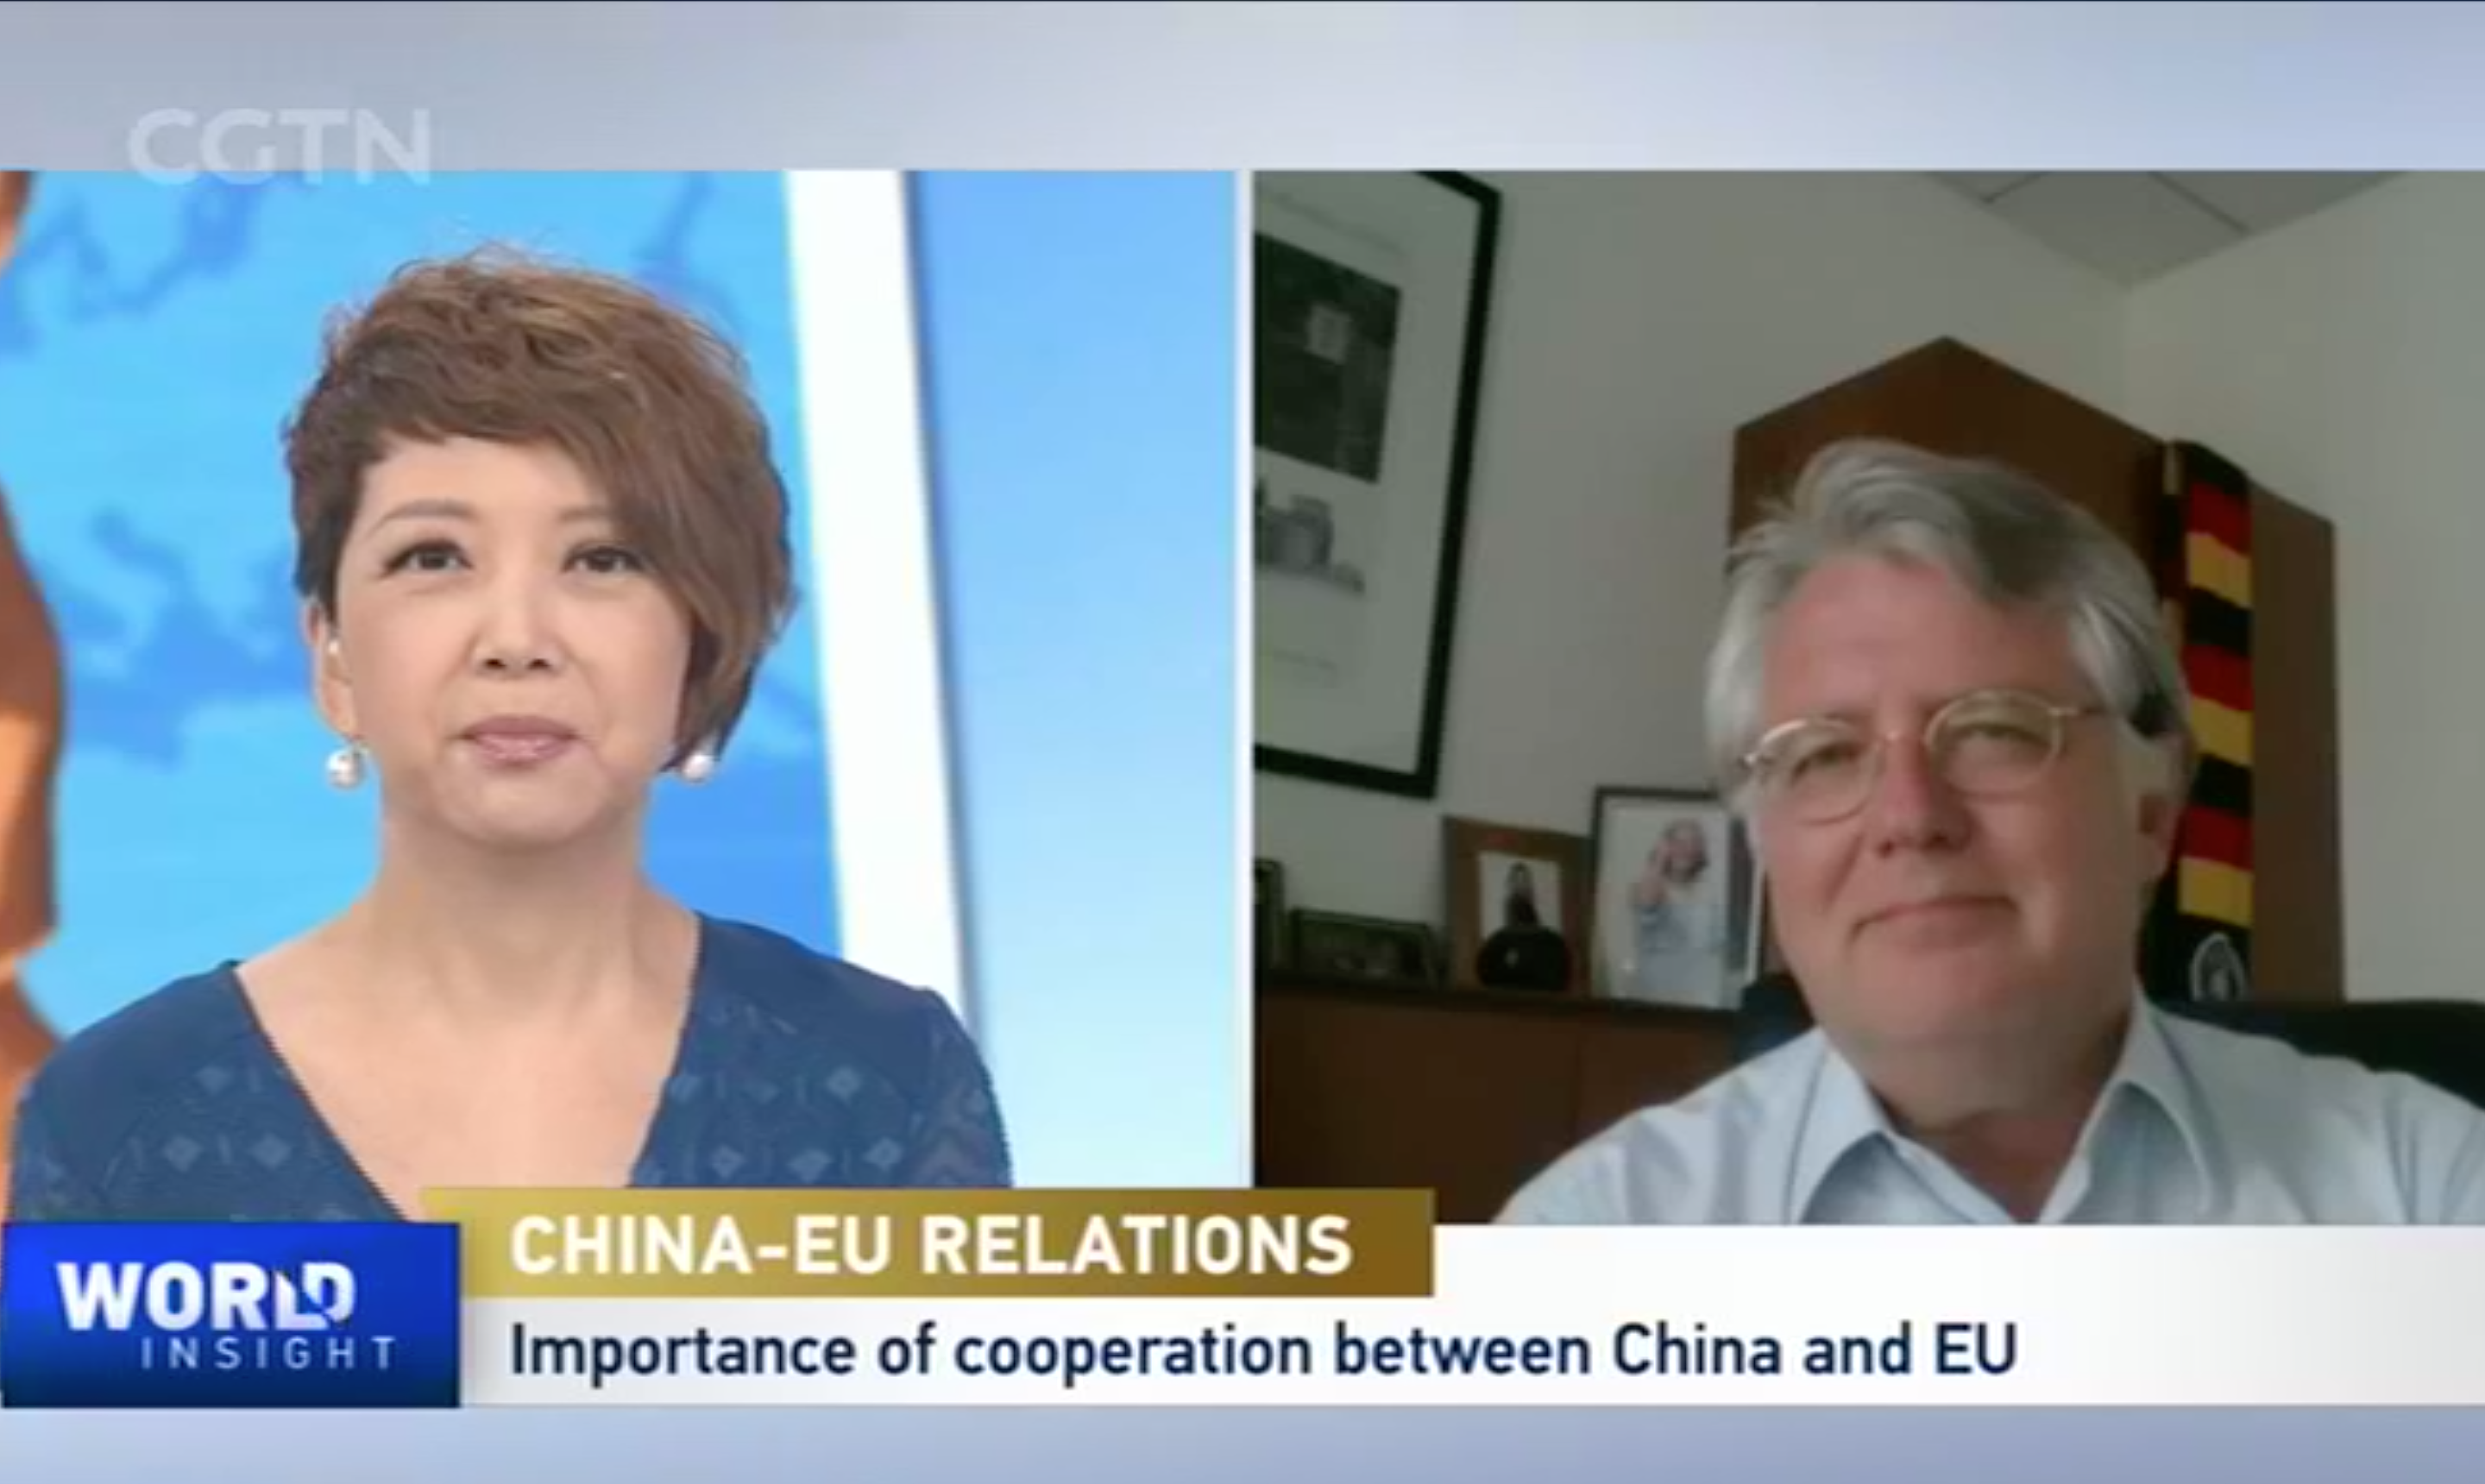 President Wuttke Joins CGTN's World Insight on EU-China Ties